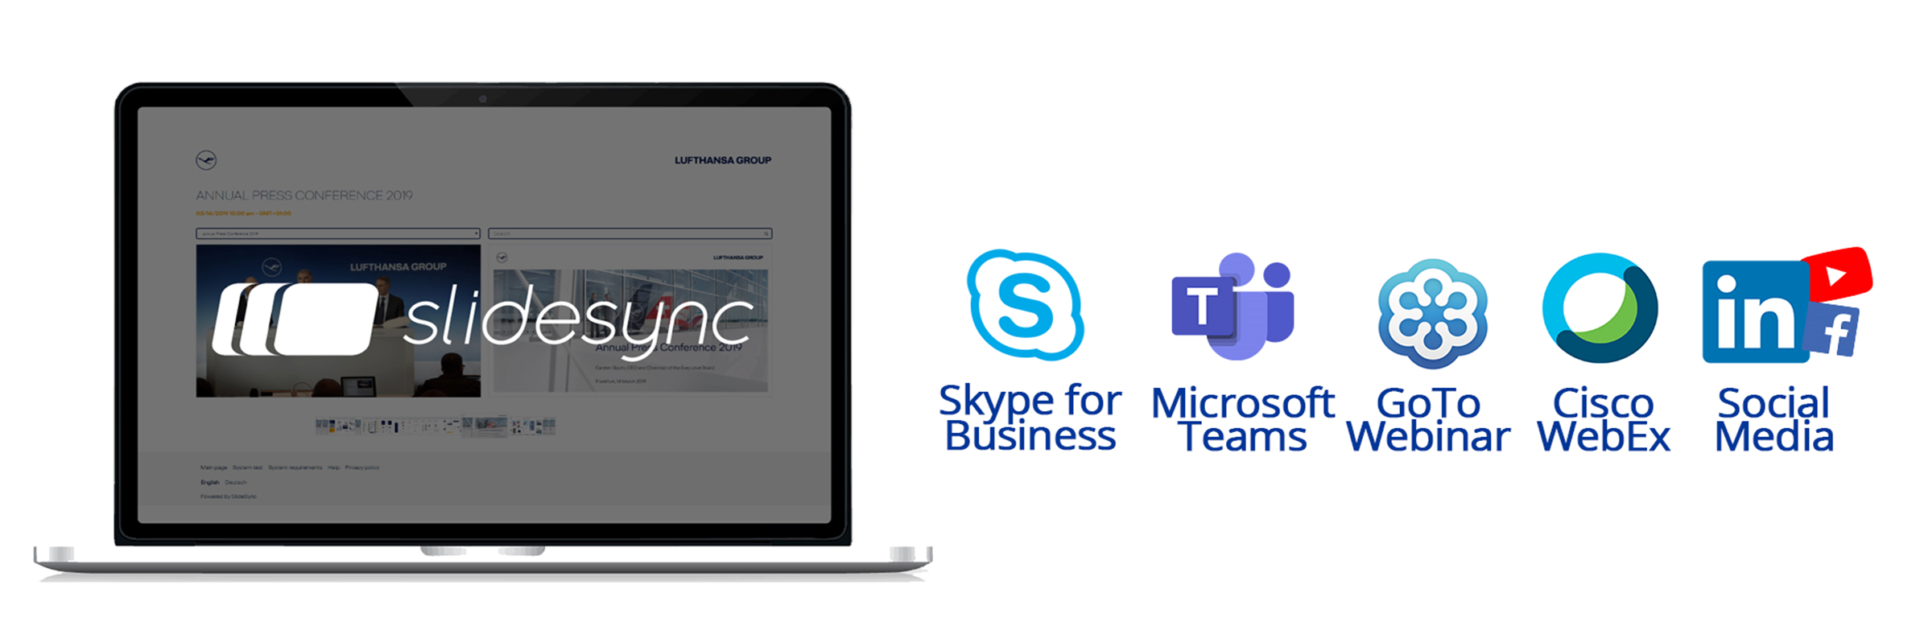 MES can integrate SlideSync with Skype, Microsoft Teams, GoTo Webinar, Cisco WebEx and social media platforms.